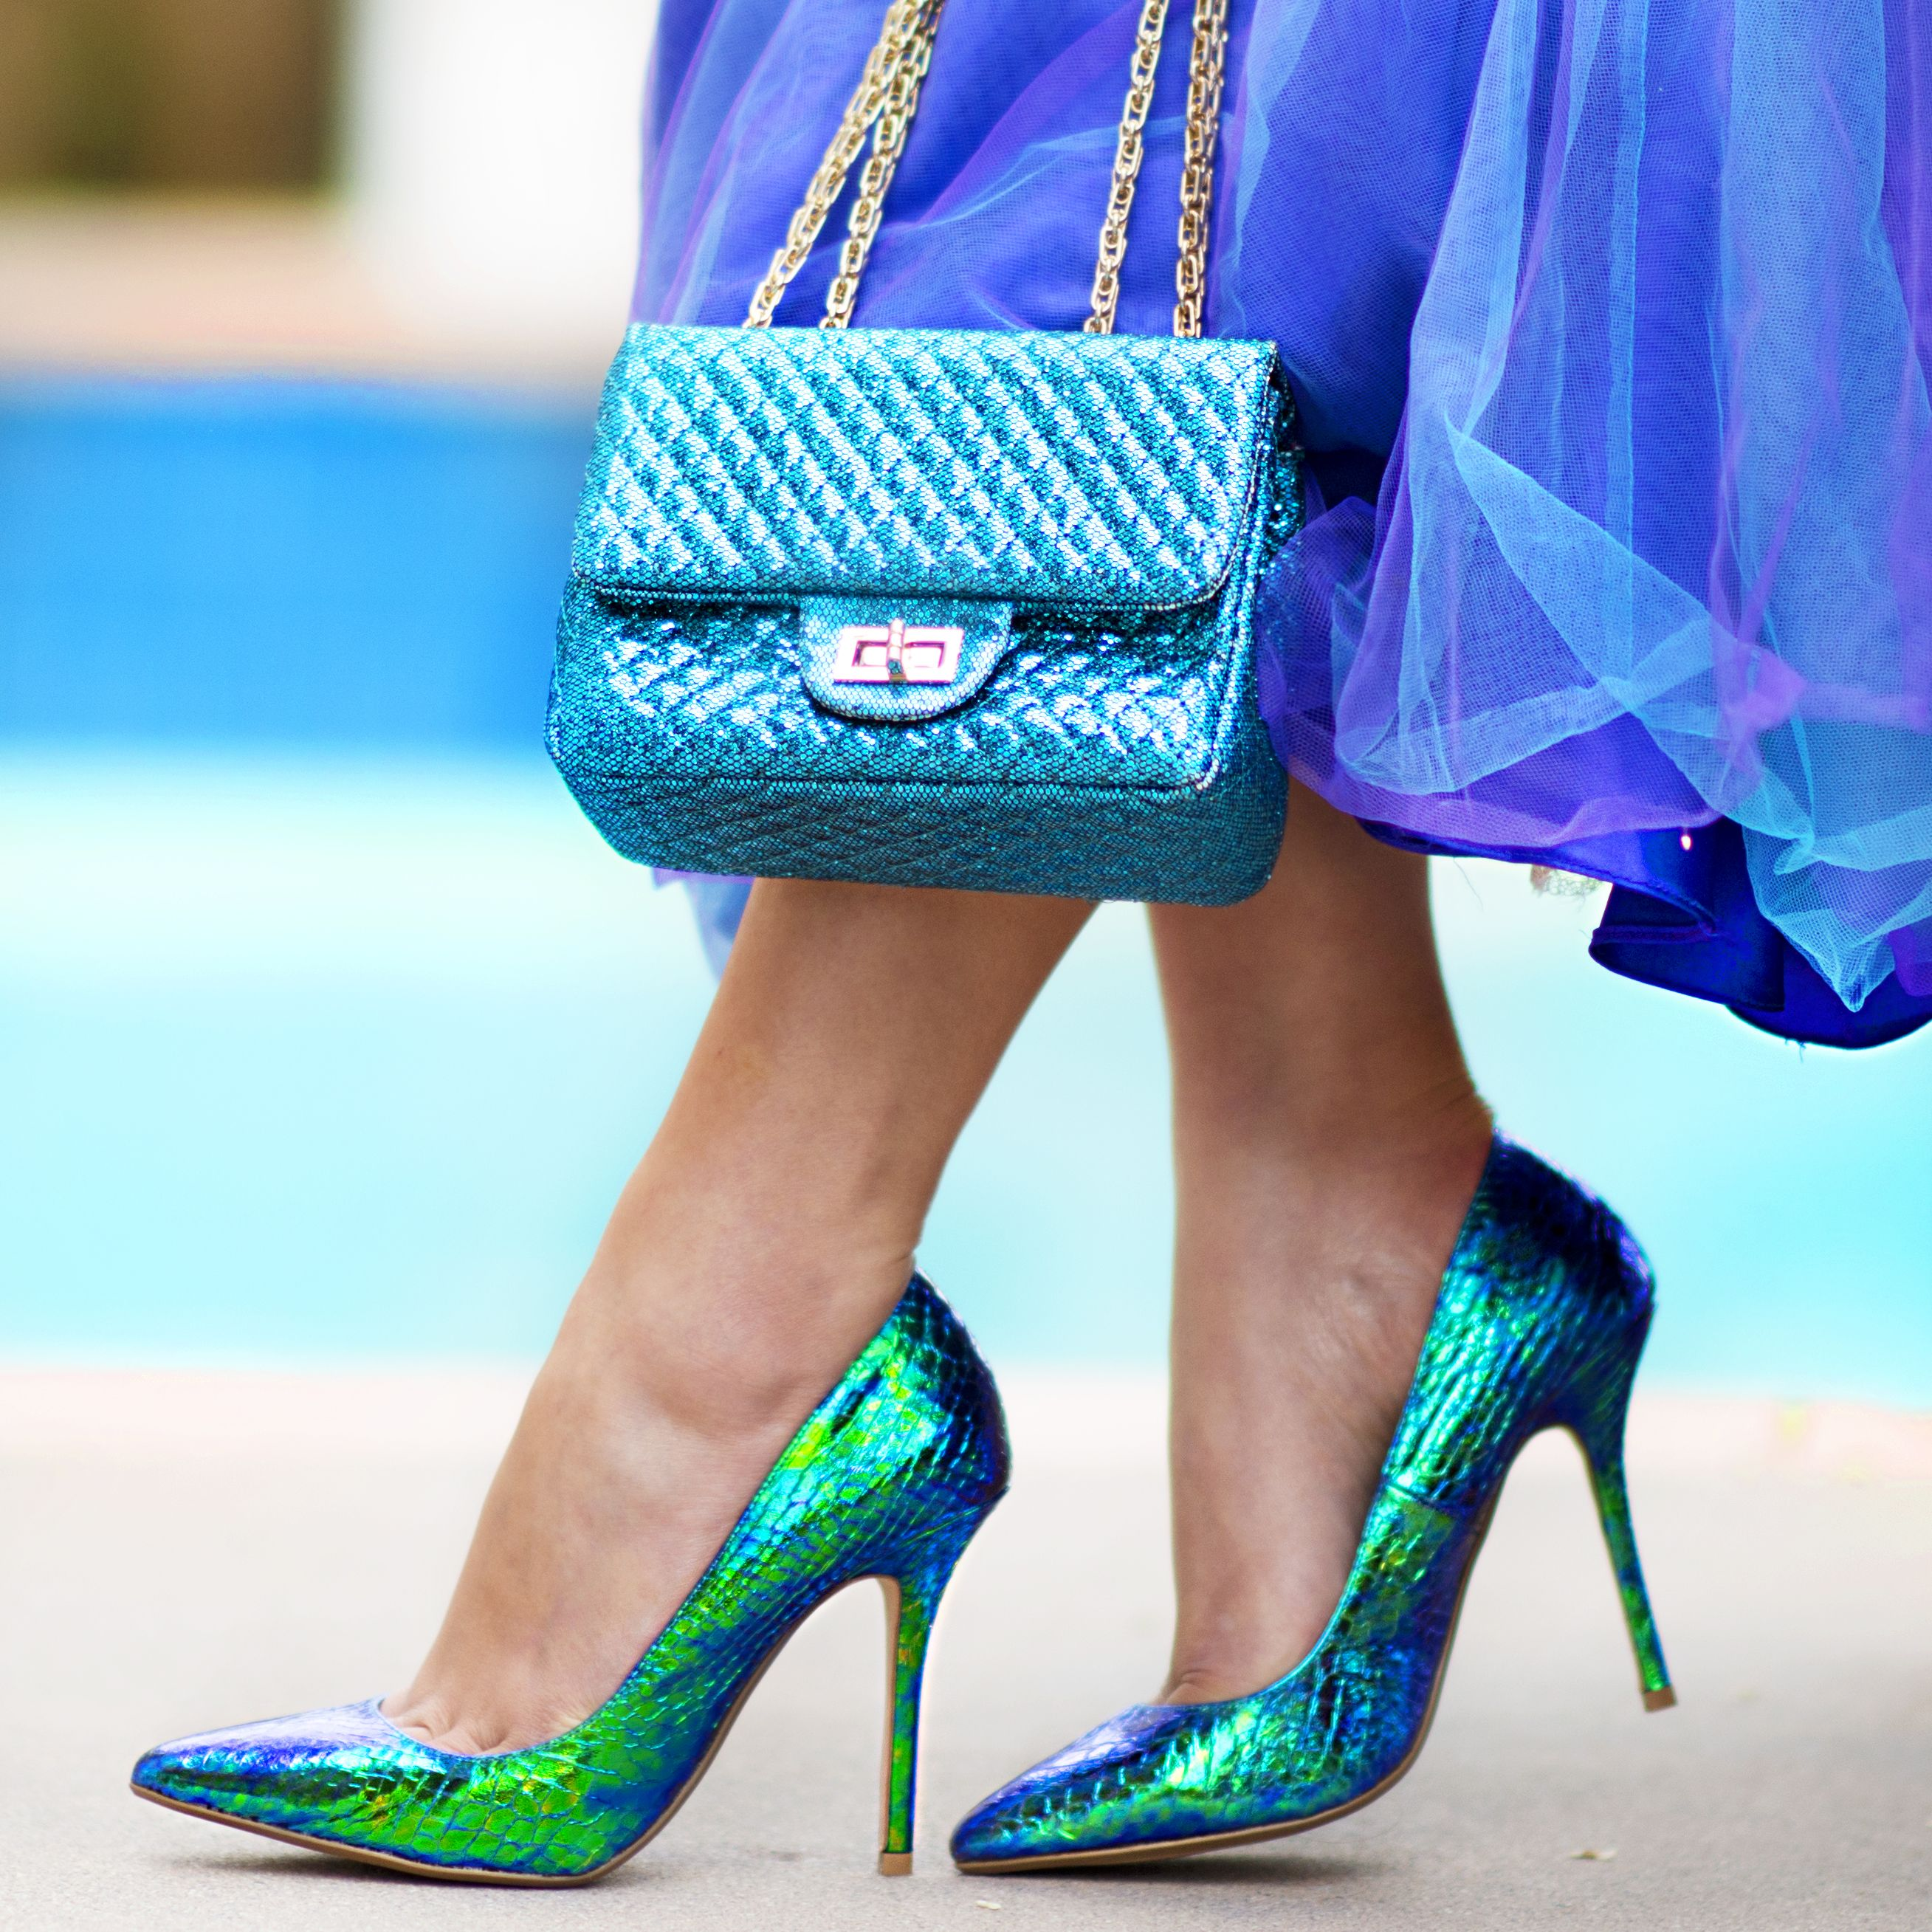 15a209344c9b Is this pair of iridescent blue metallic snake print high heel pump shoes  from Dune London and this blue metallic mini shoulder bag the perfect match  ...